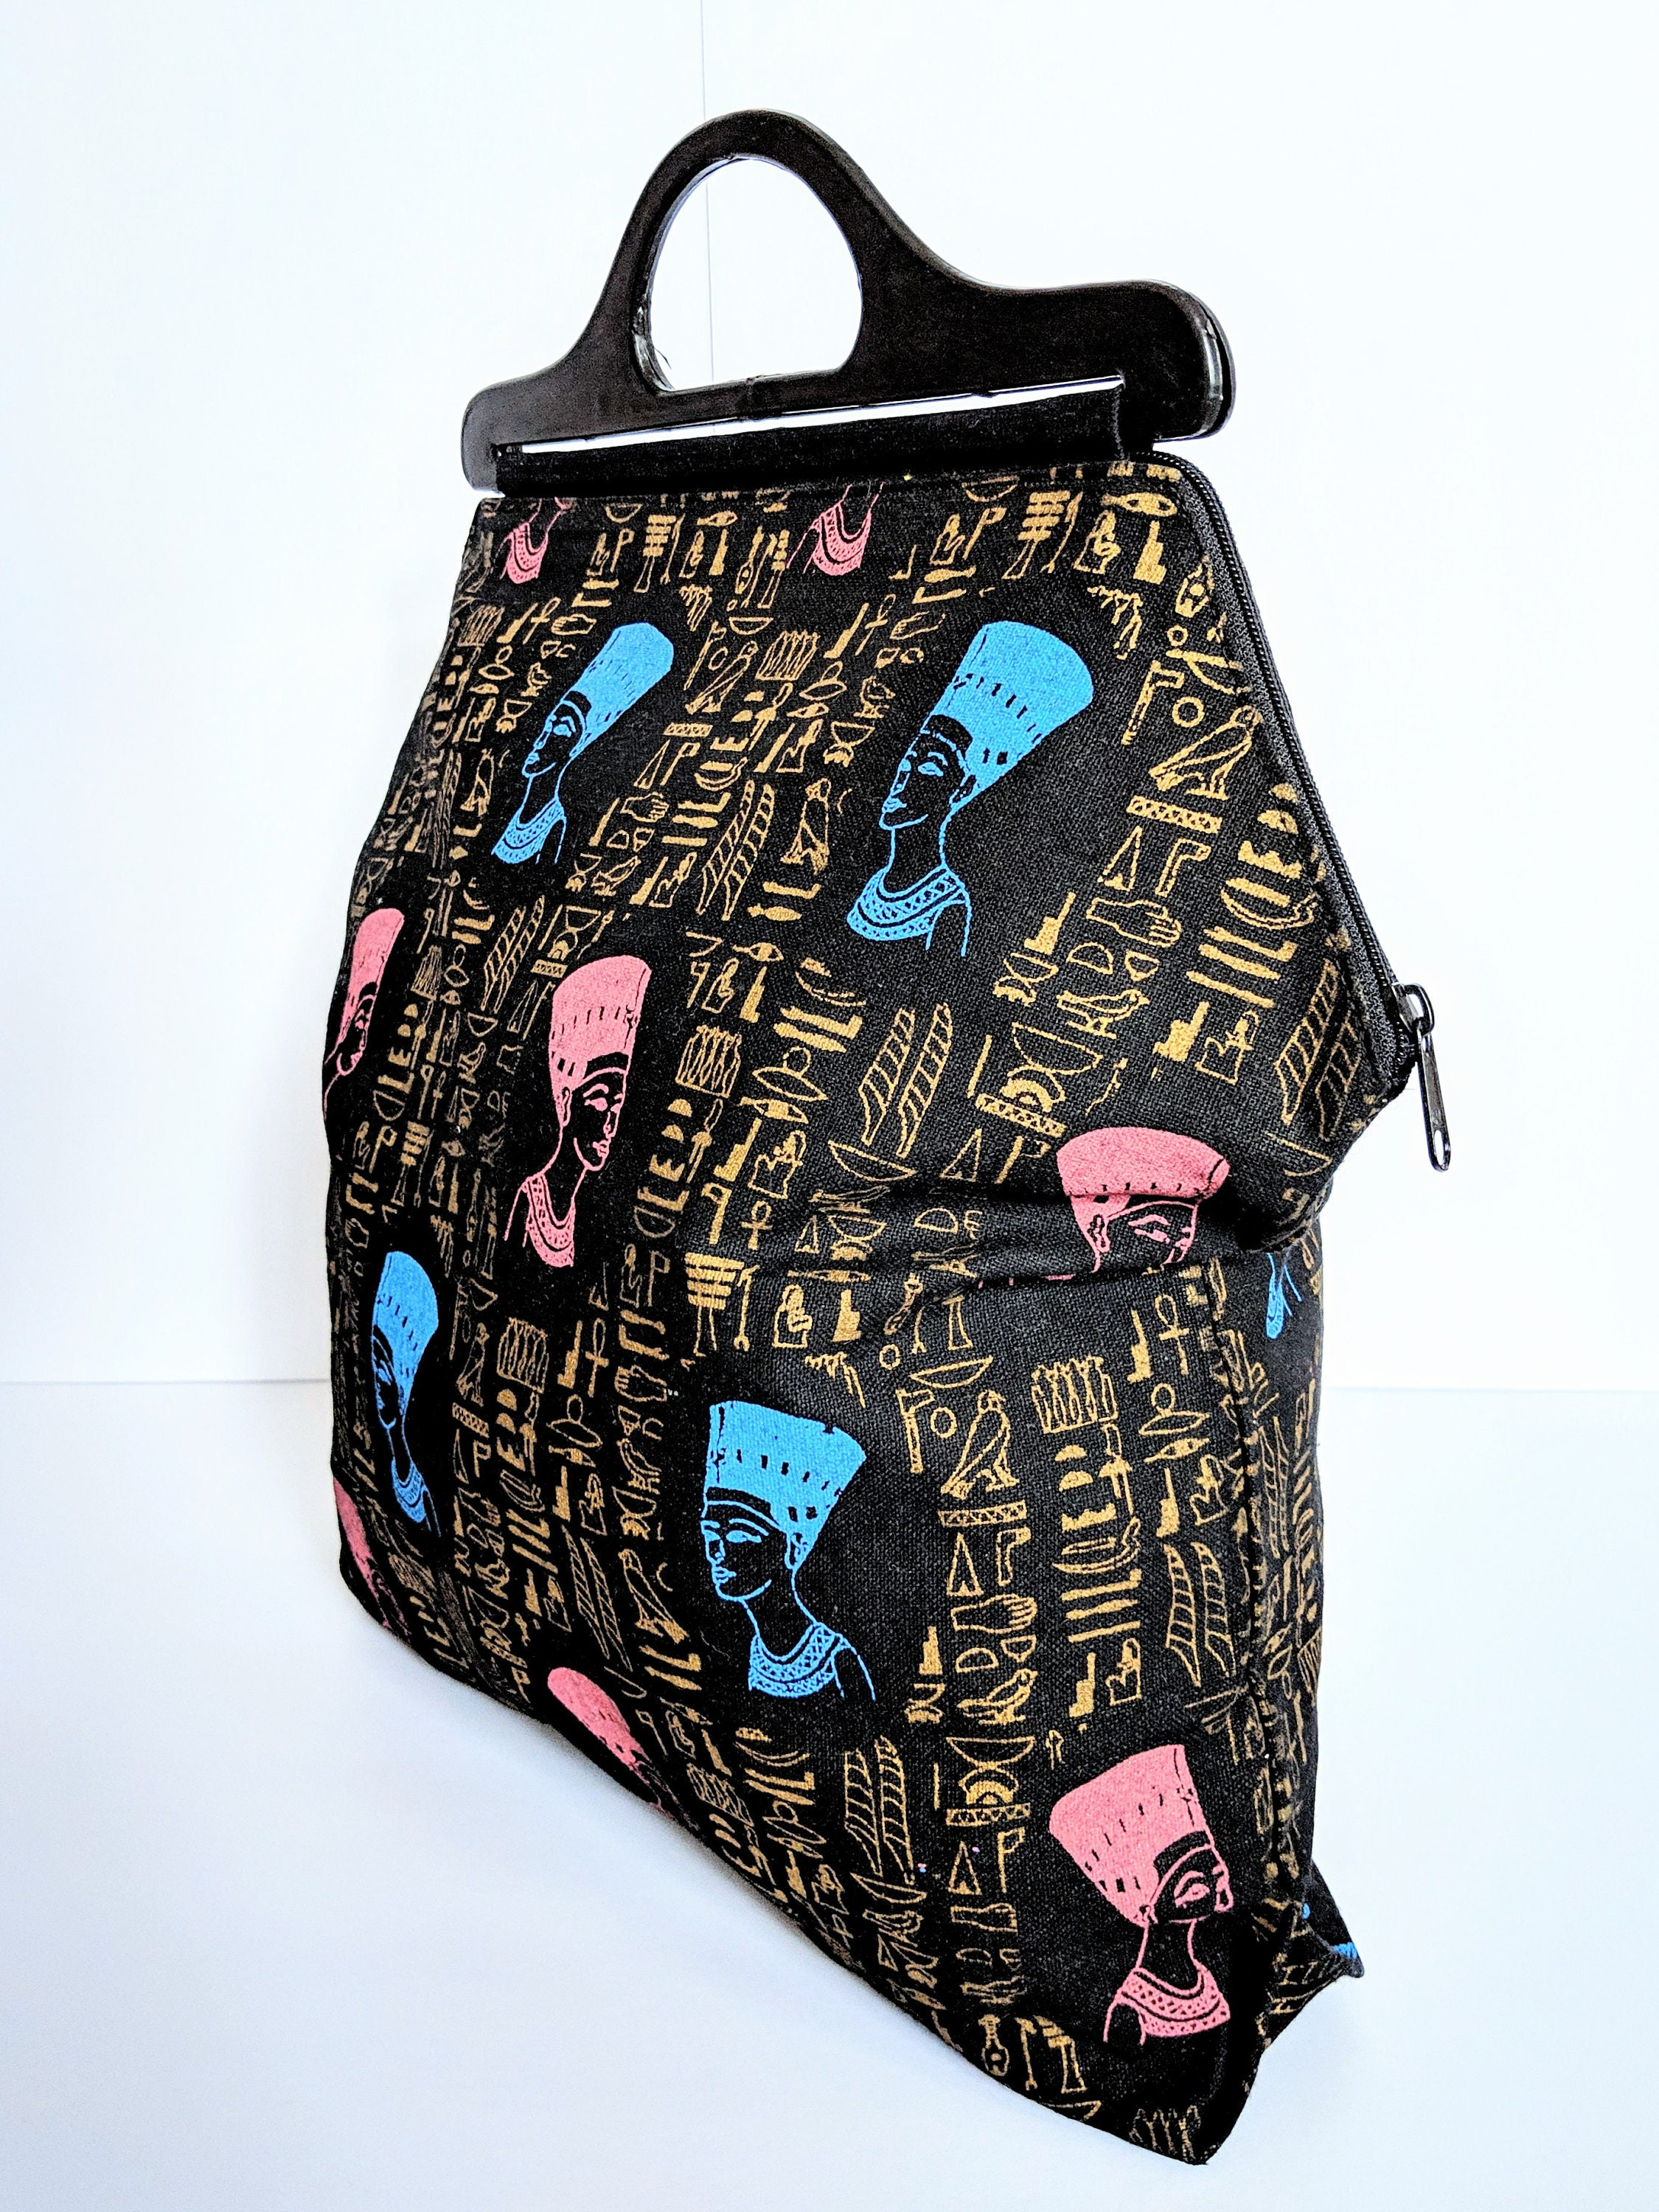 Vintage Nefertiti Egyptian Tote Bag With Zipper Blue And Pink Etsy